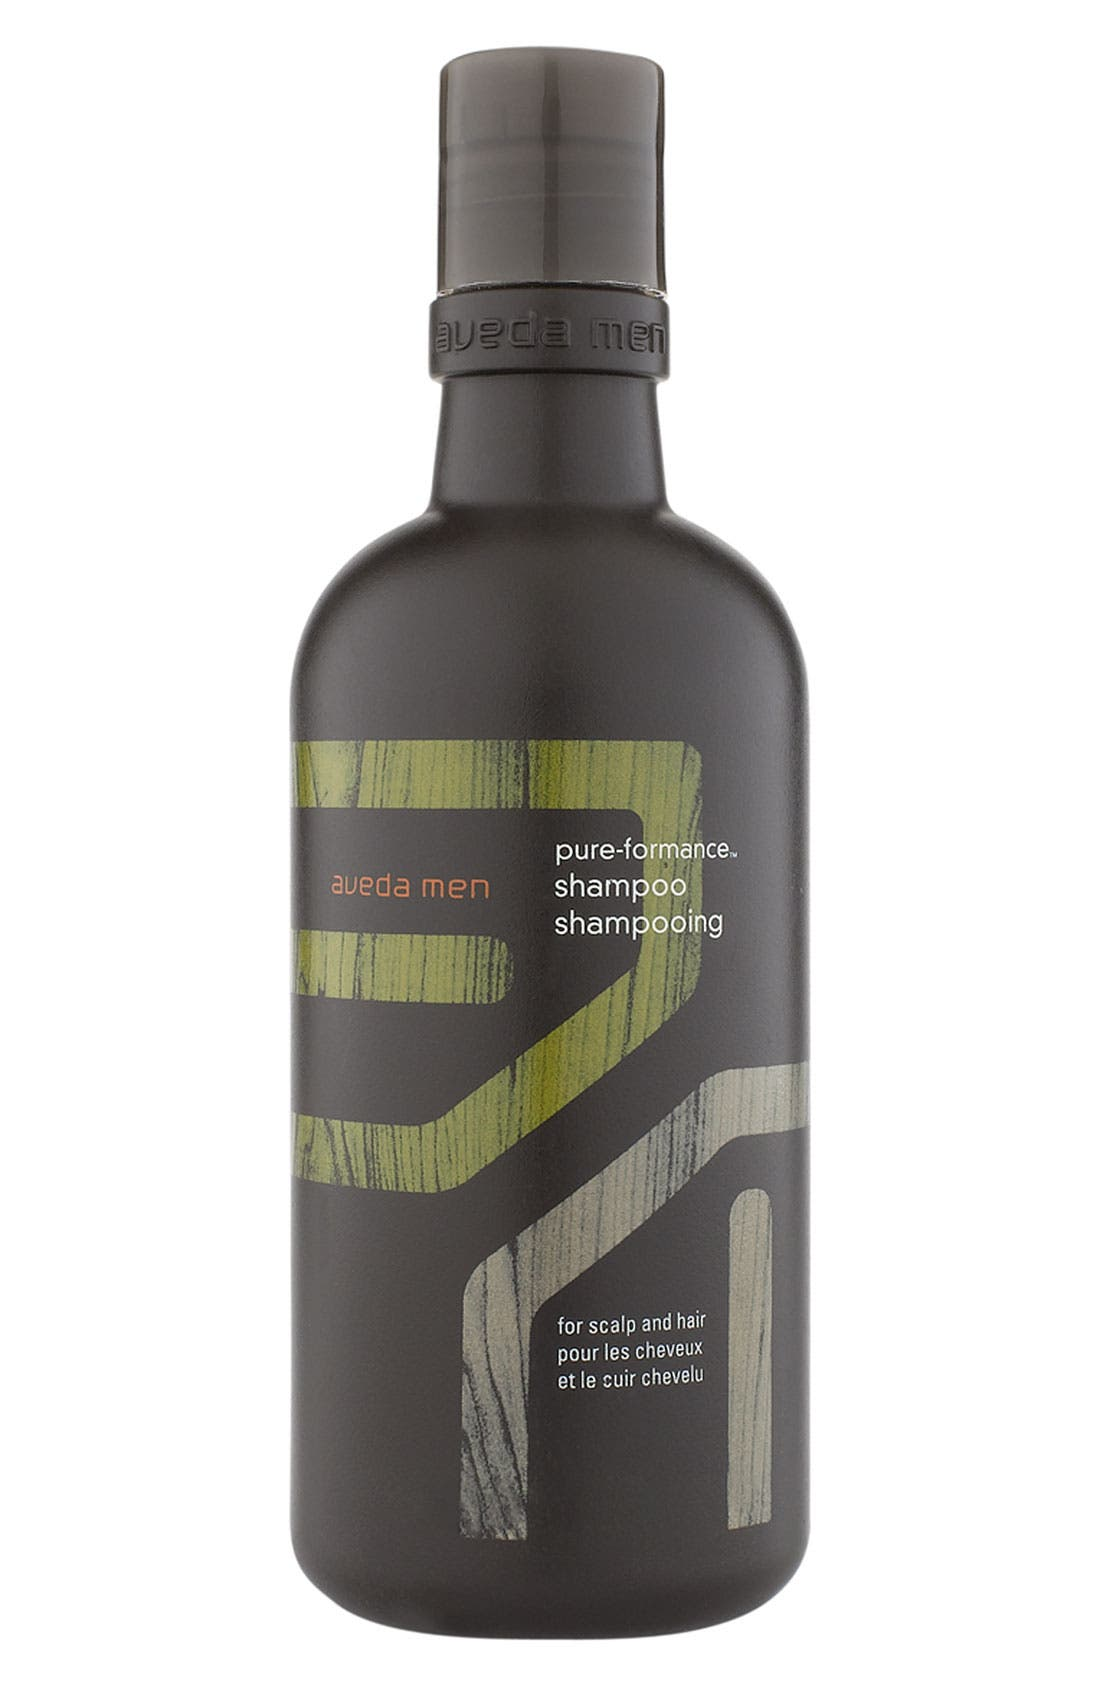 Aveda Men 'pure-formance™' Shampoo